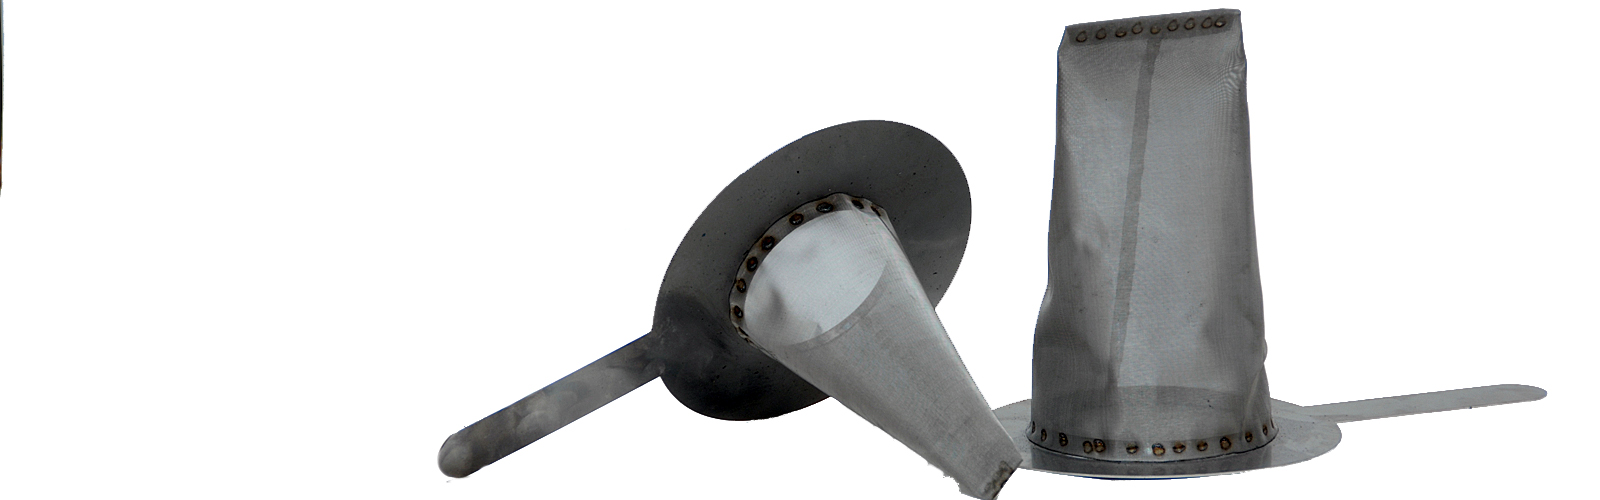 Stainless steel Hat Strainers_edited-3